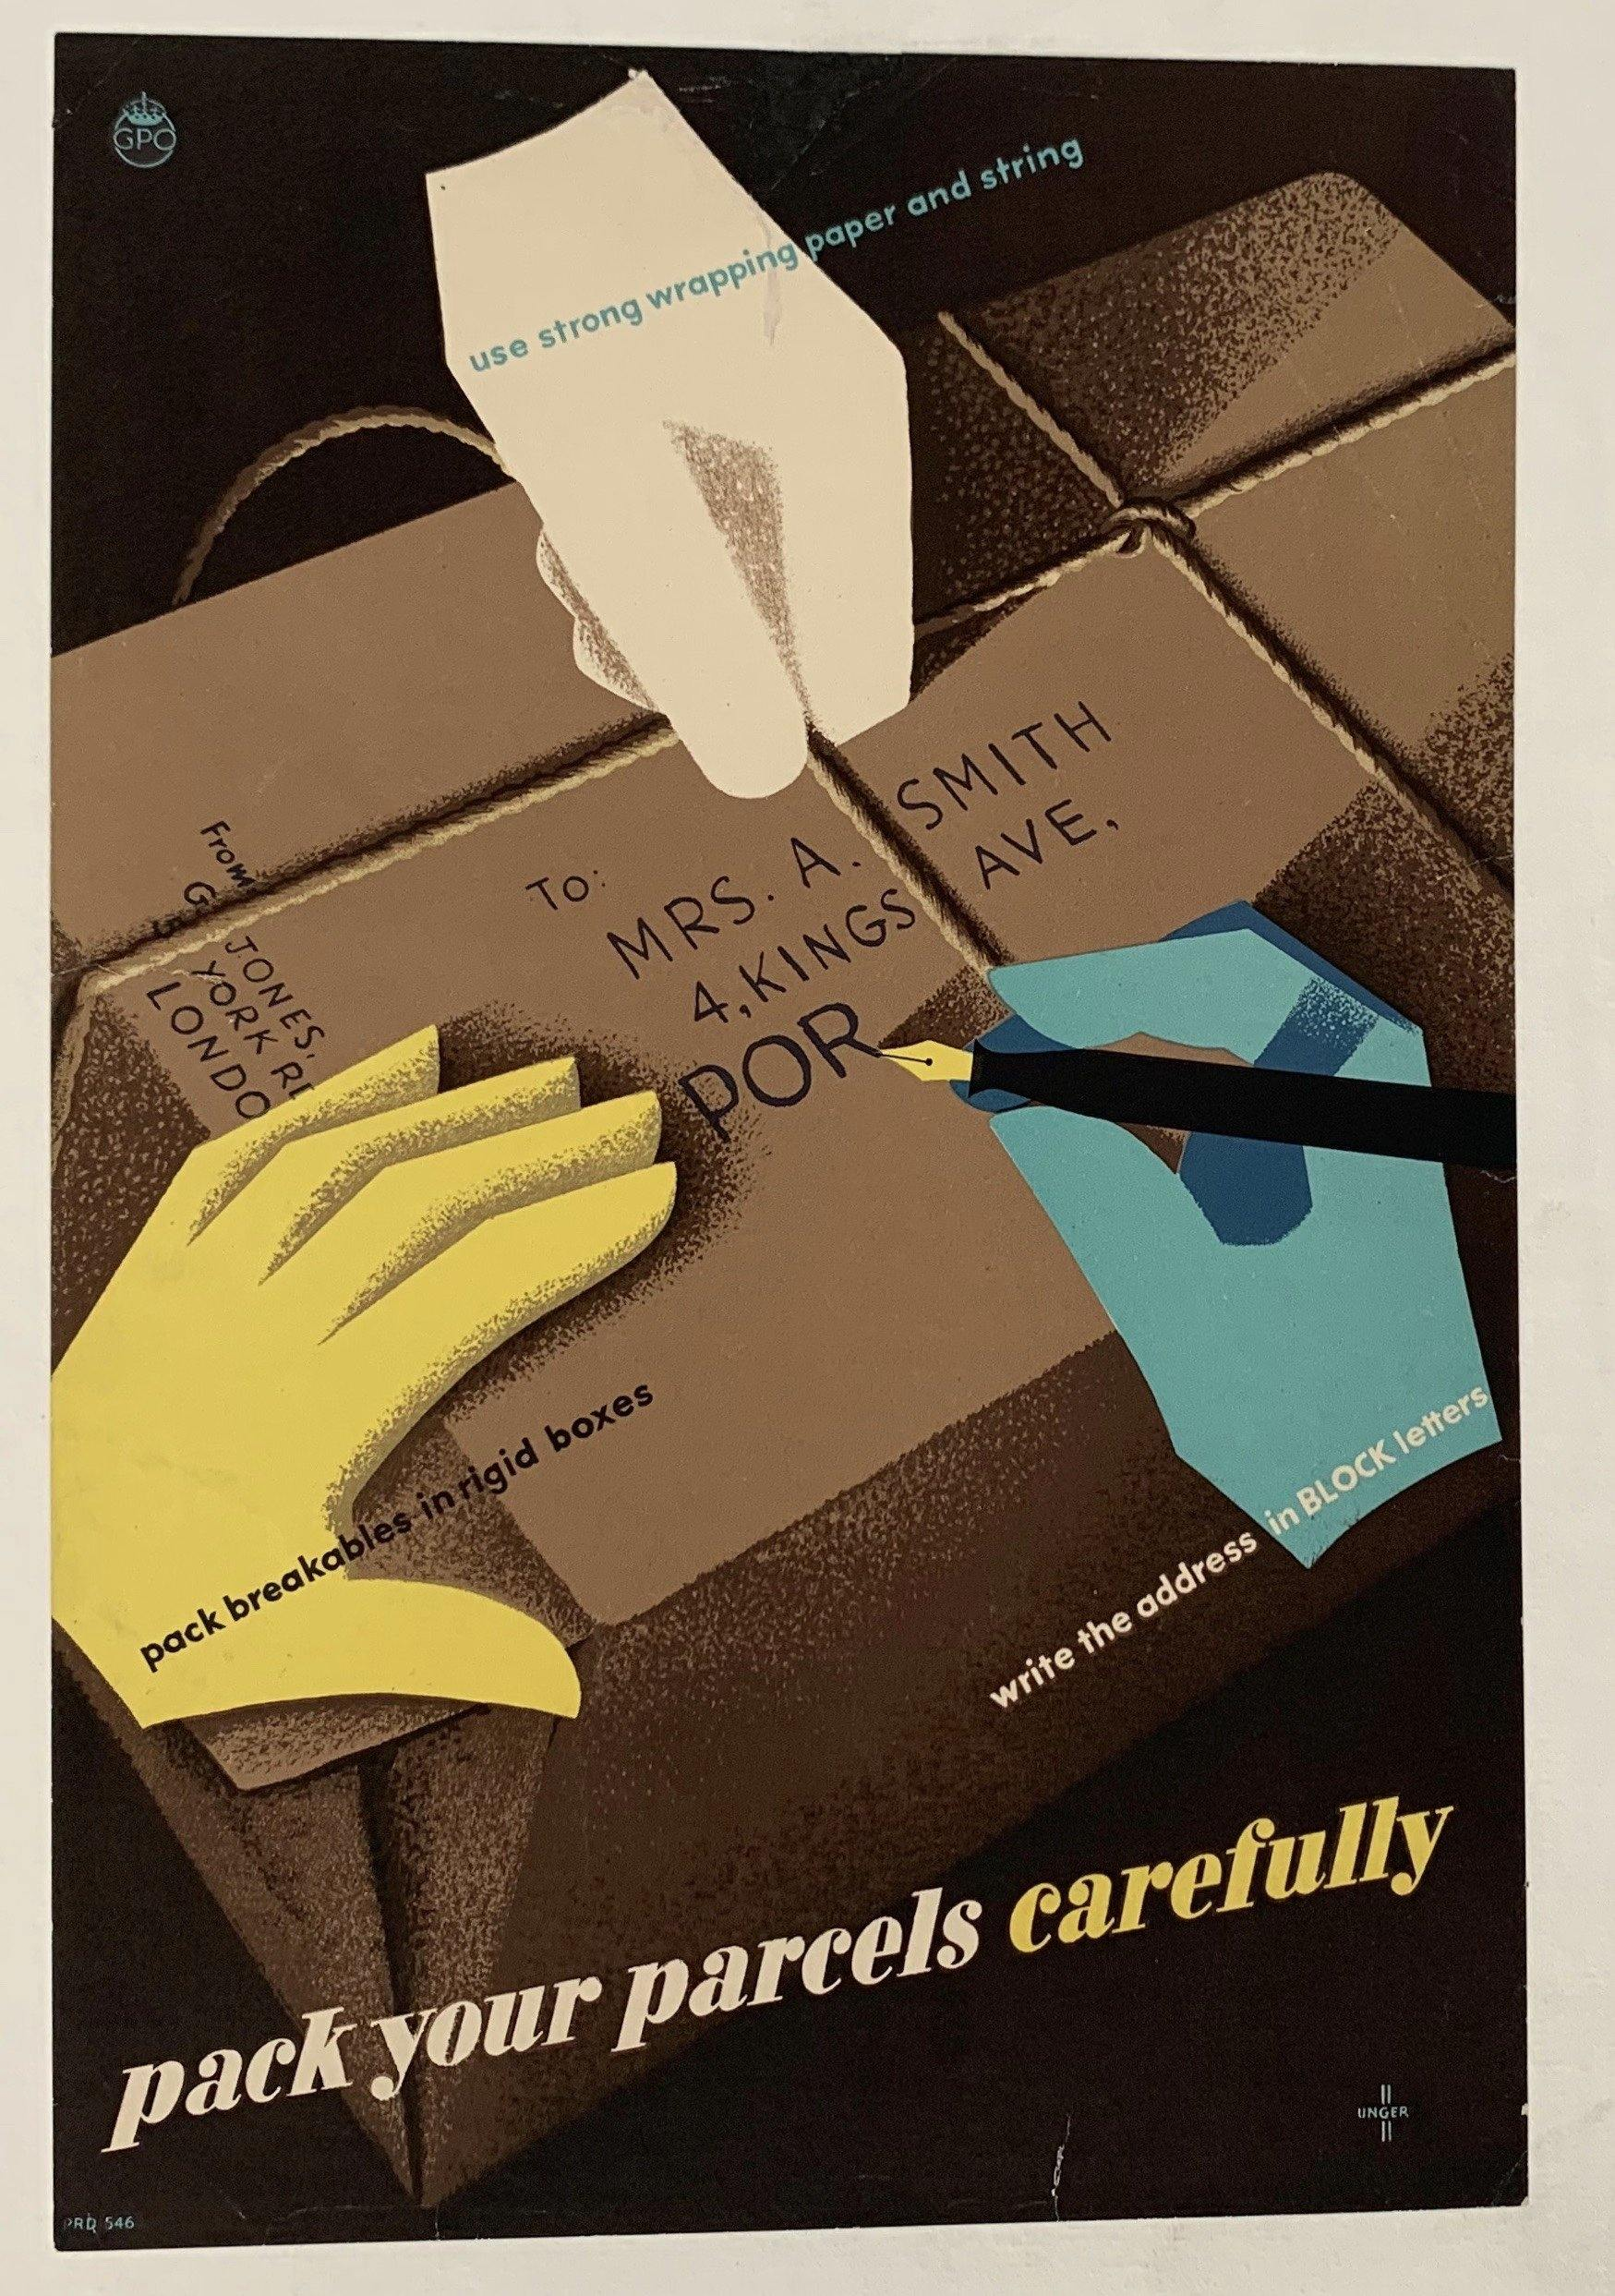 Pack your parcels carefully - Poster Museum